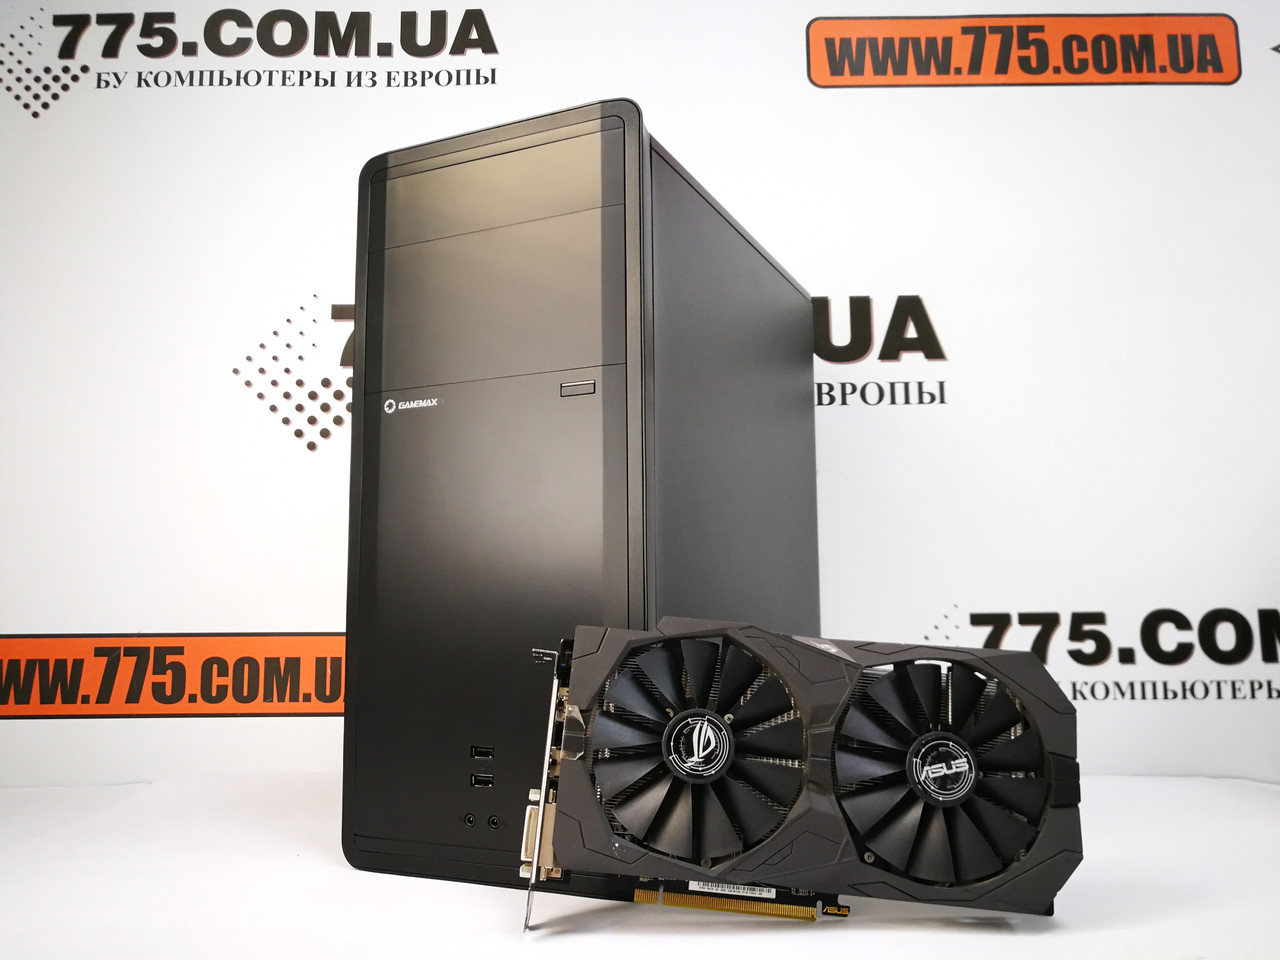 Игровой компьютер Gamemax, Intel Core i7-4790s 4.0GHz, RAM 8ГБ, SSD 120ГБ, HDD 500ГБ, RX 470 4GB